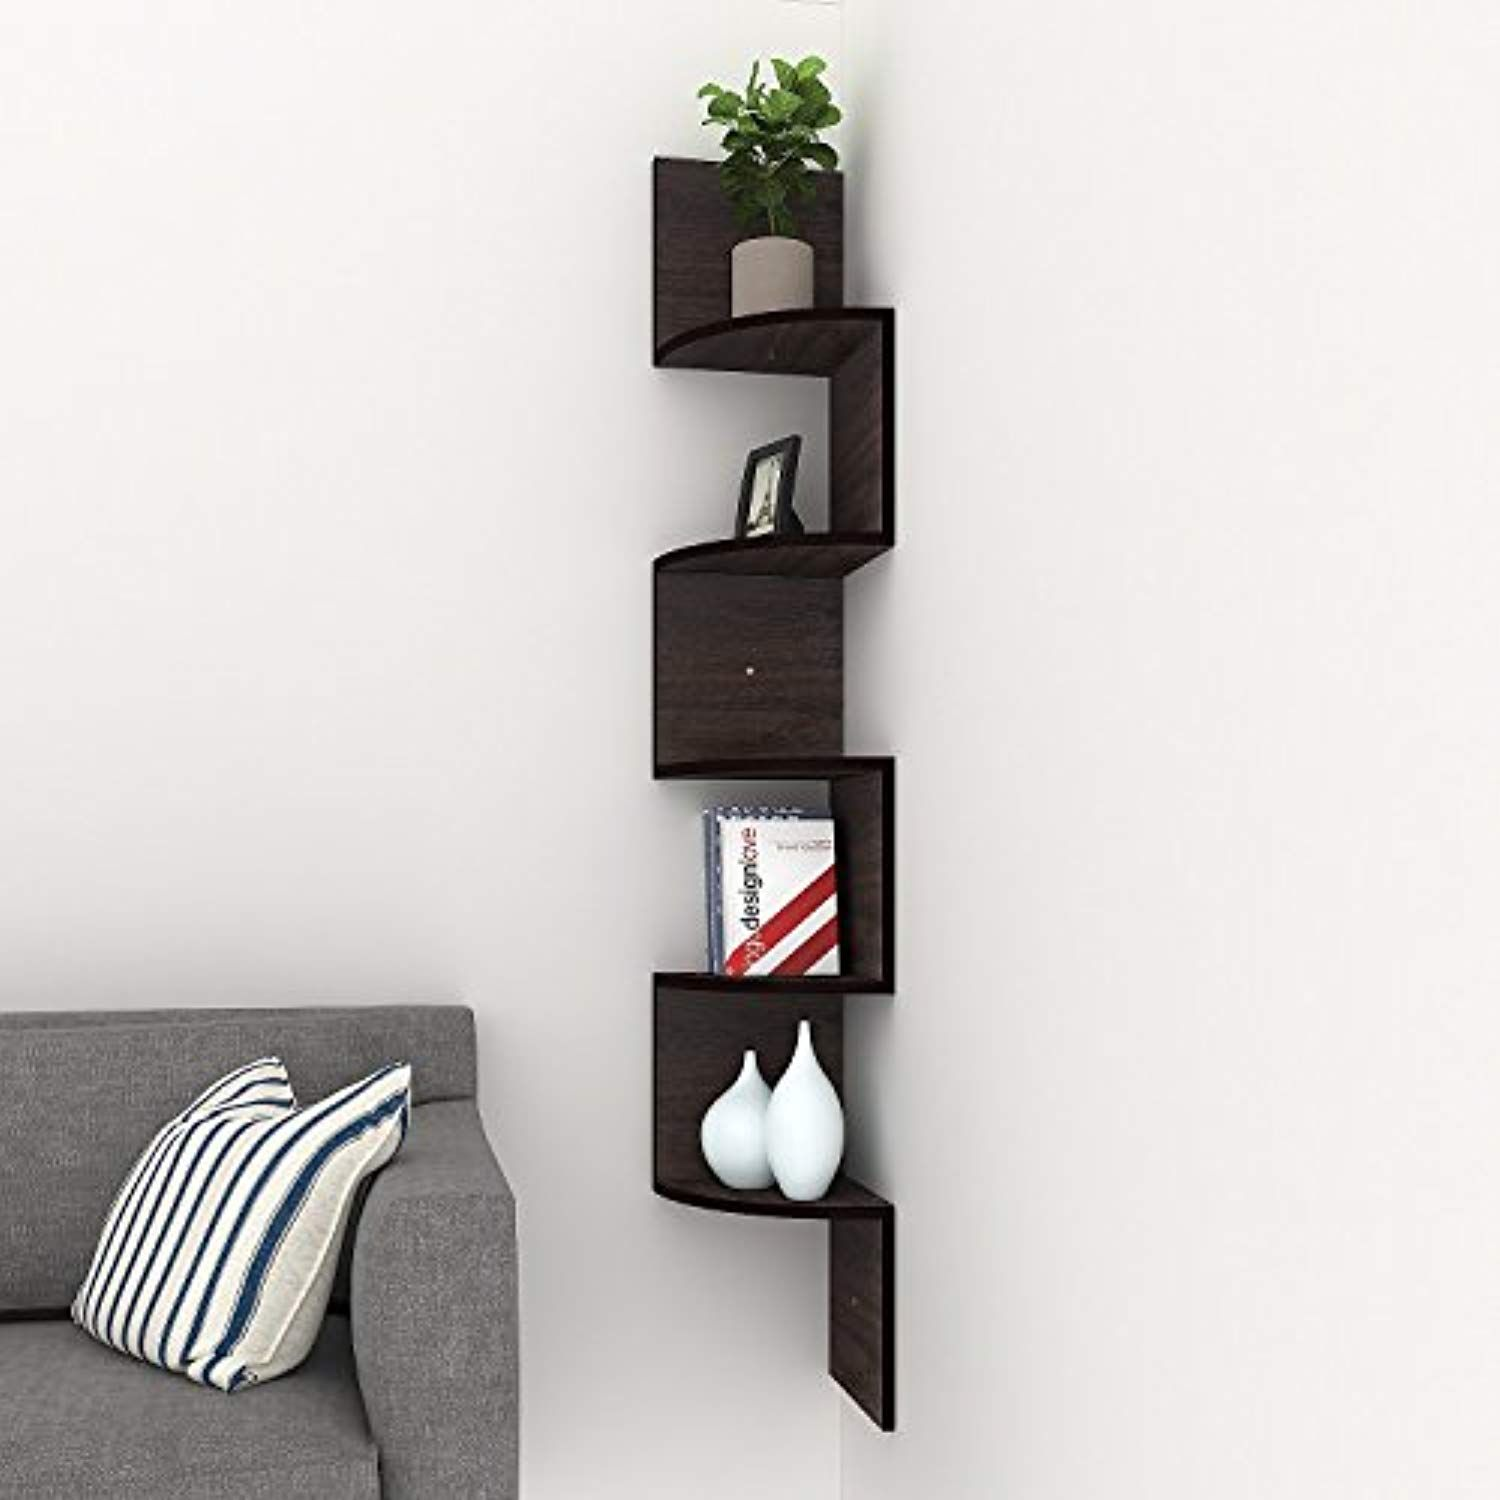 Fashine 5 Tier Corner Wall Mount Shelves Walnut Finish Corner Shelf Home Floating Storage Wall Mounted Shelves Corner Wall Shelves Floating Shelves